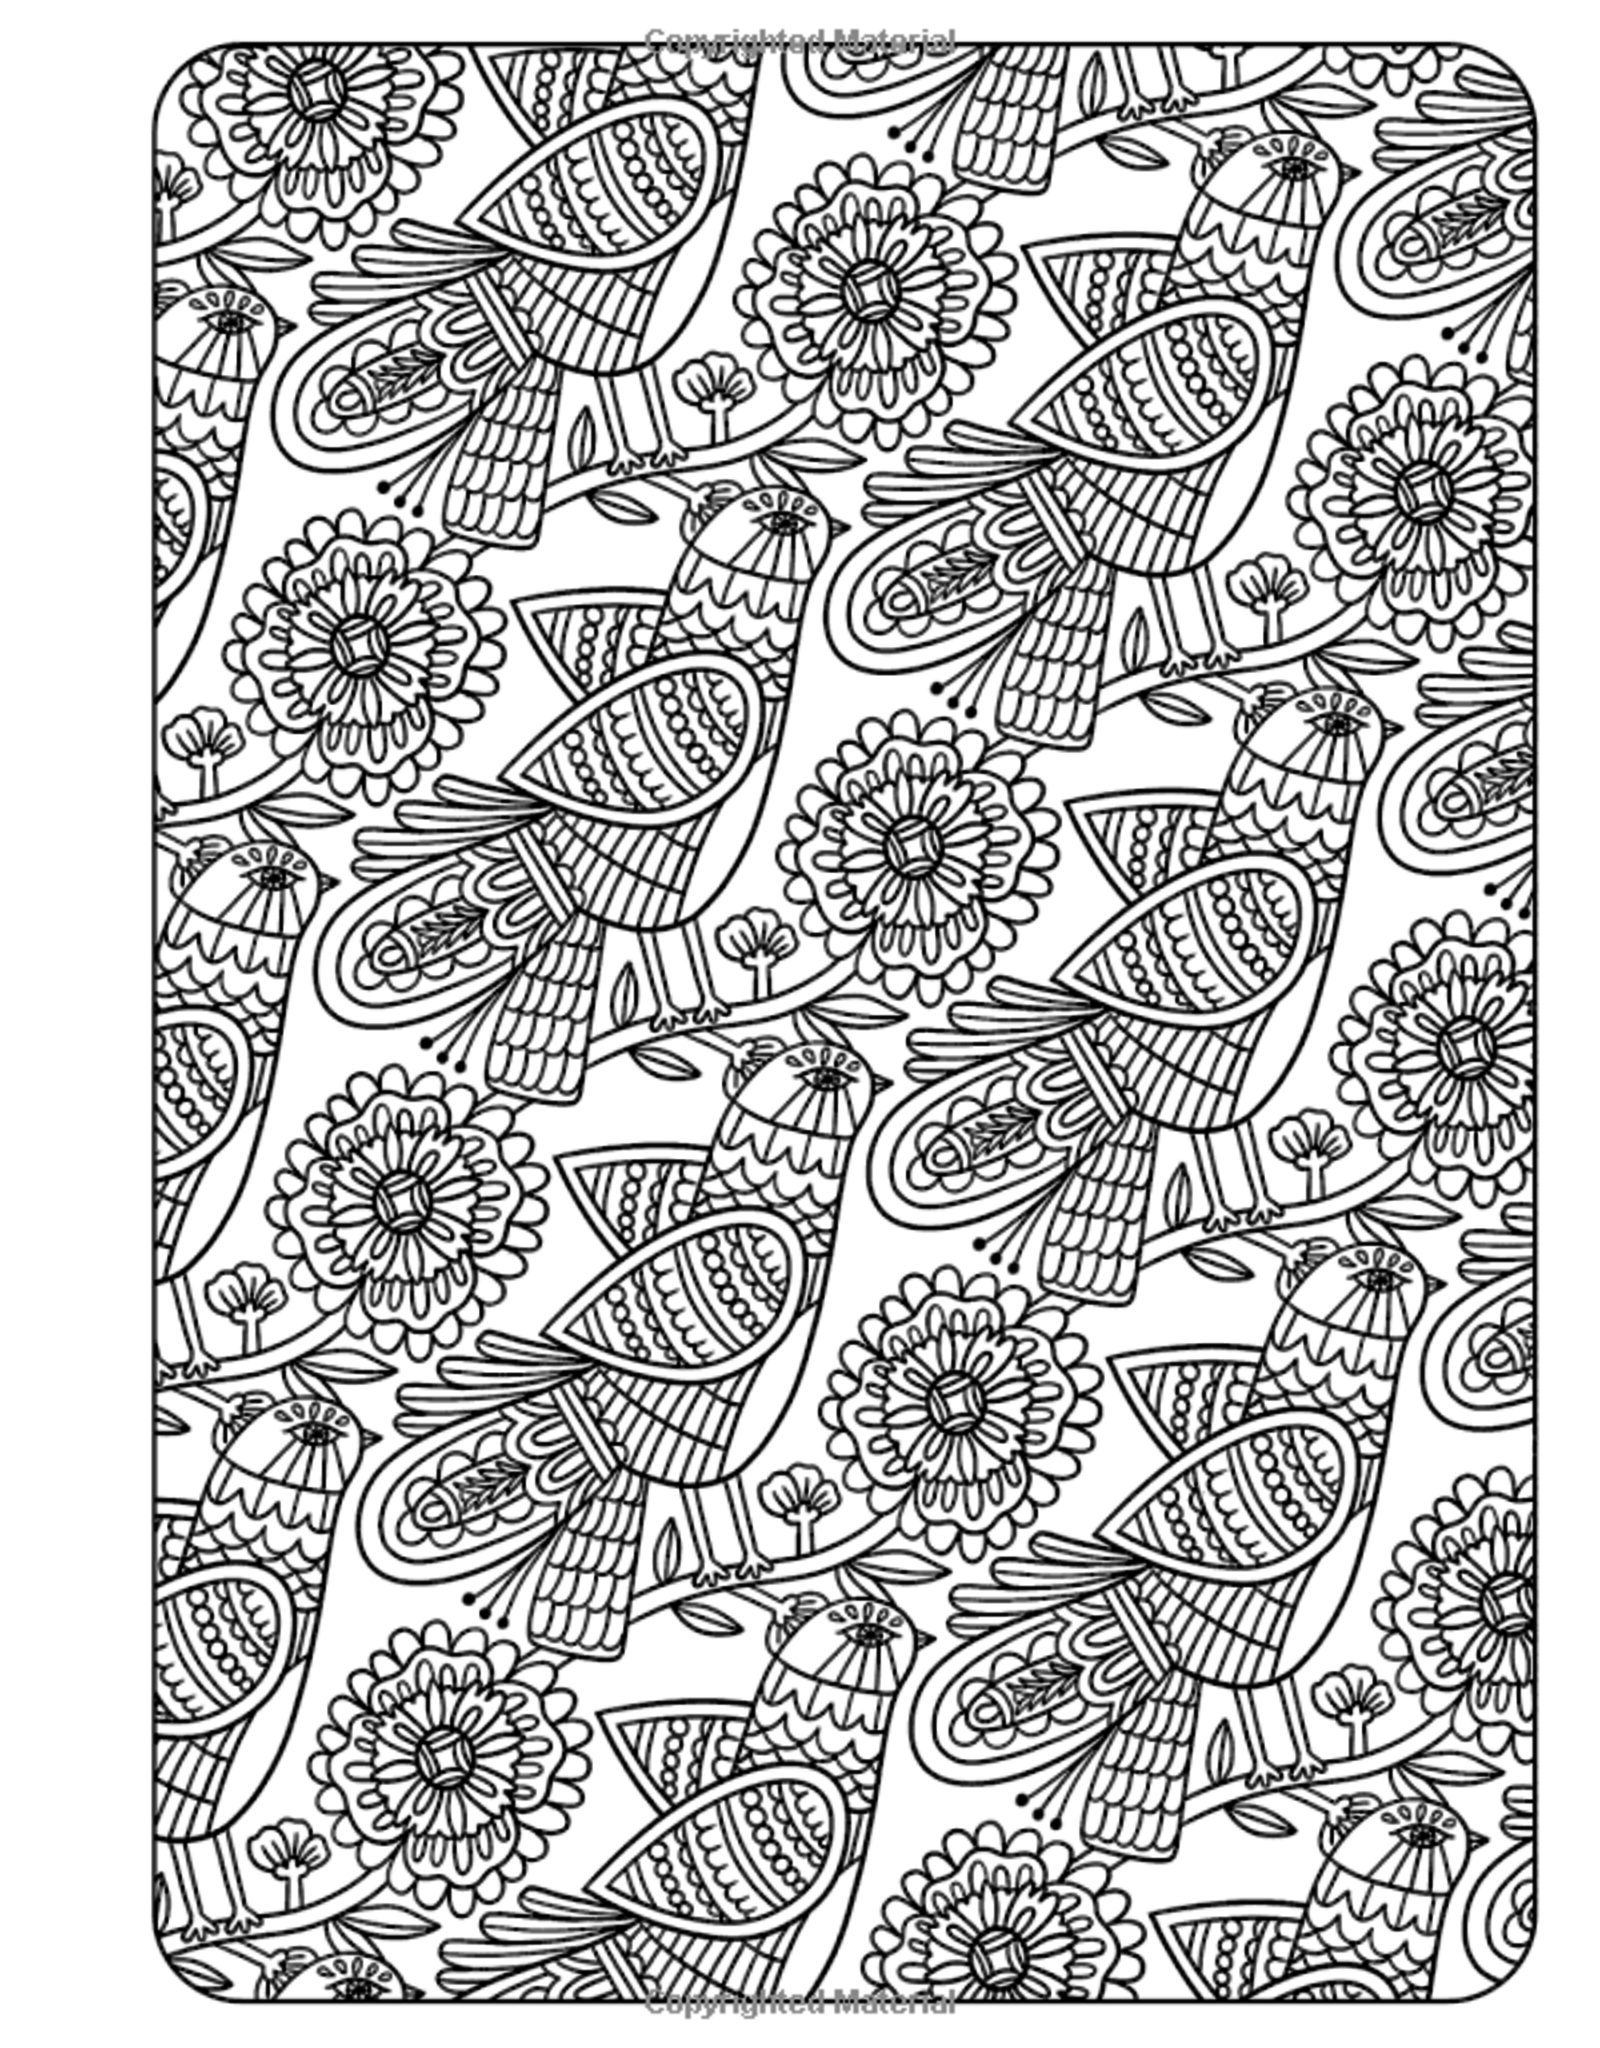 Posh Coloring Book: Patterns for peace